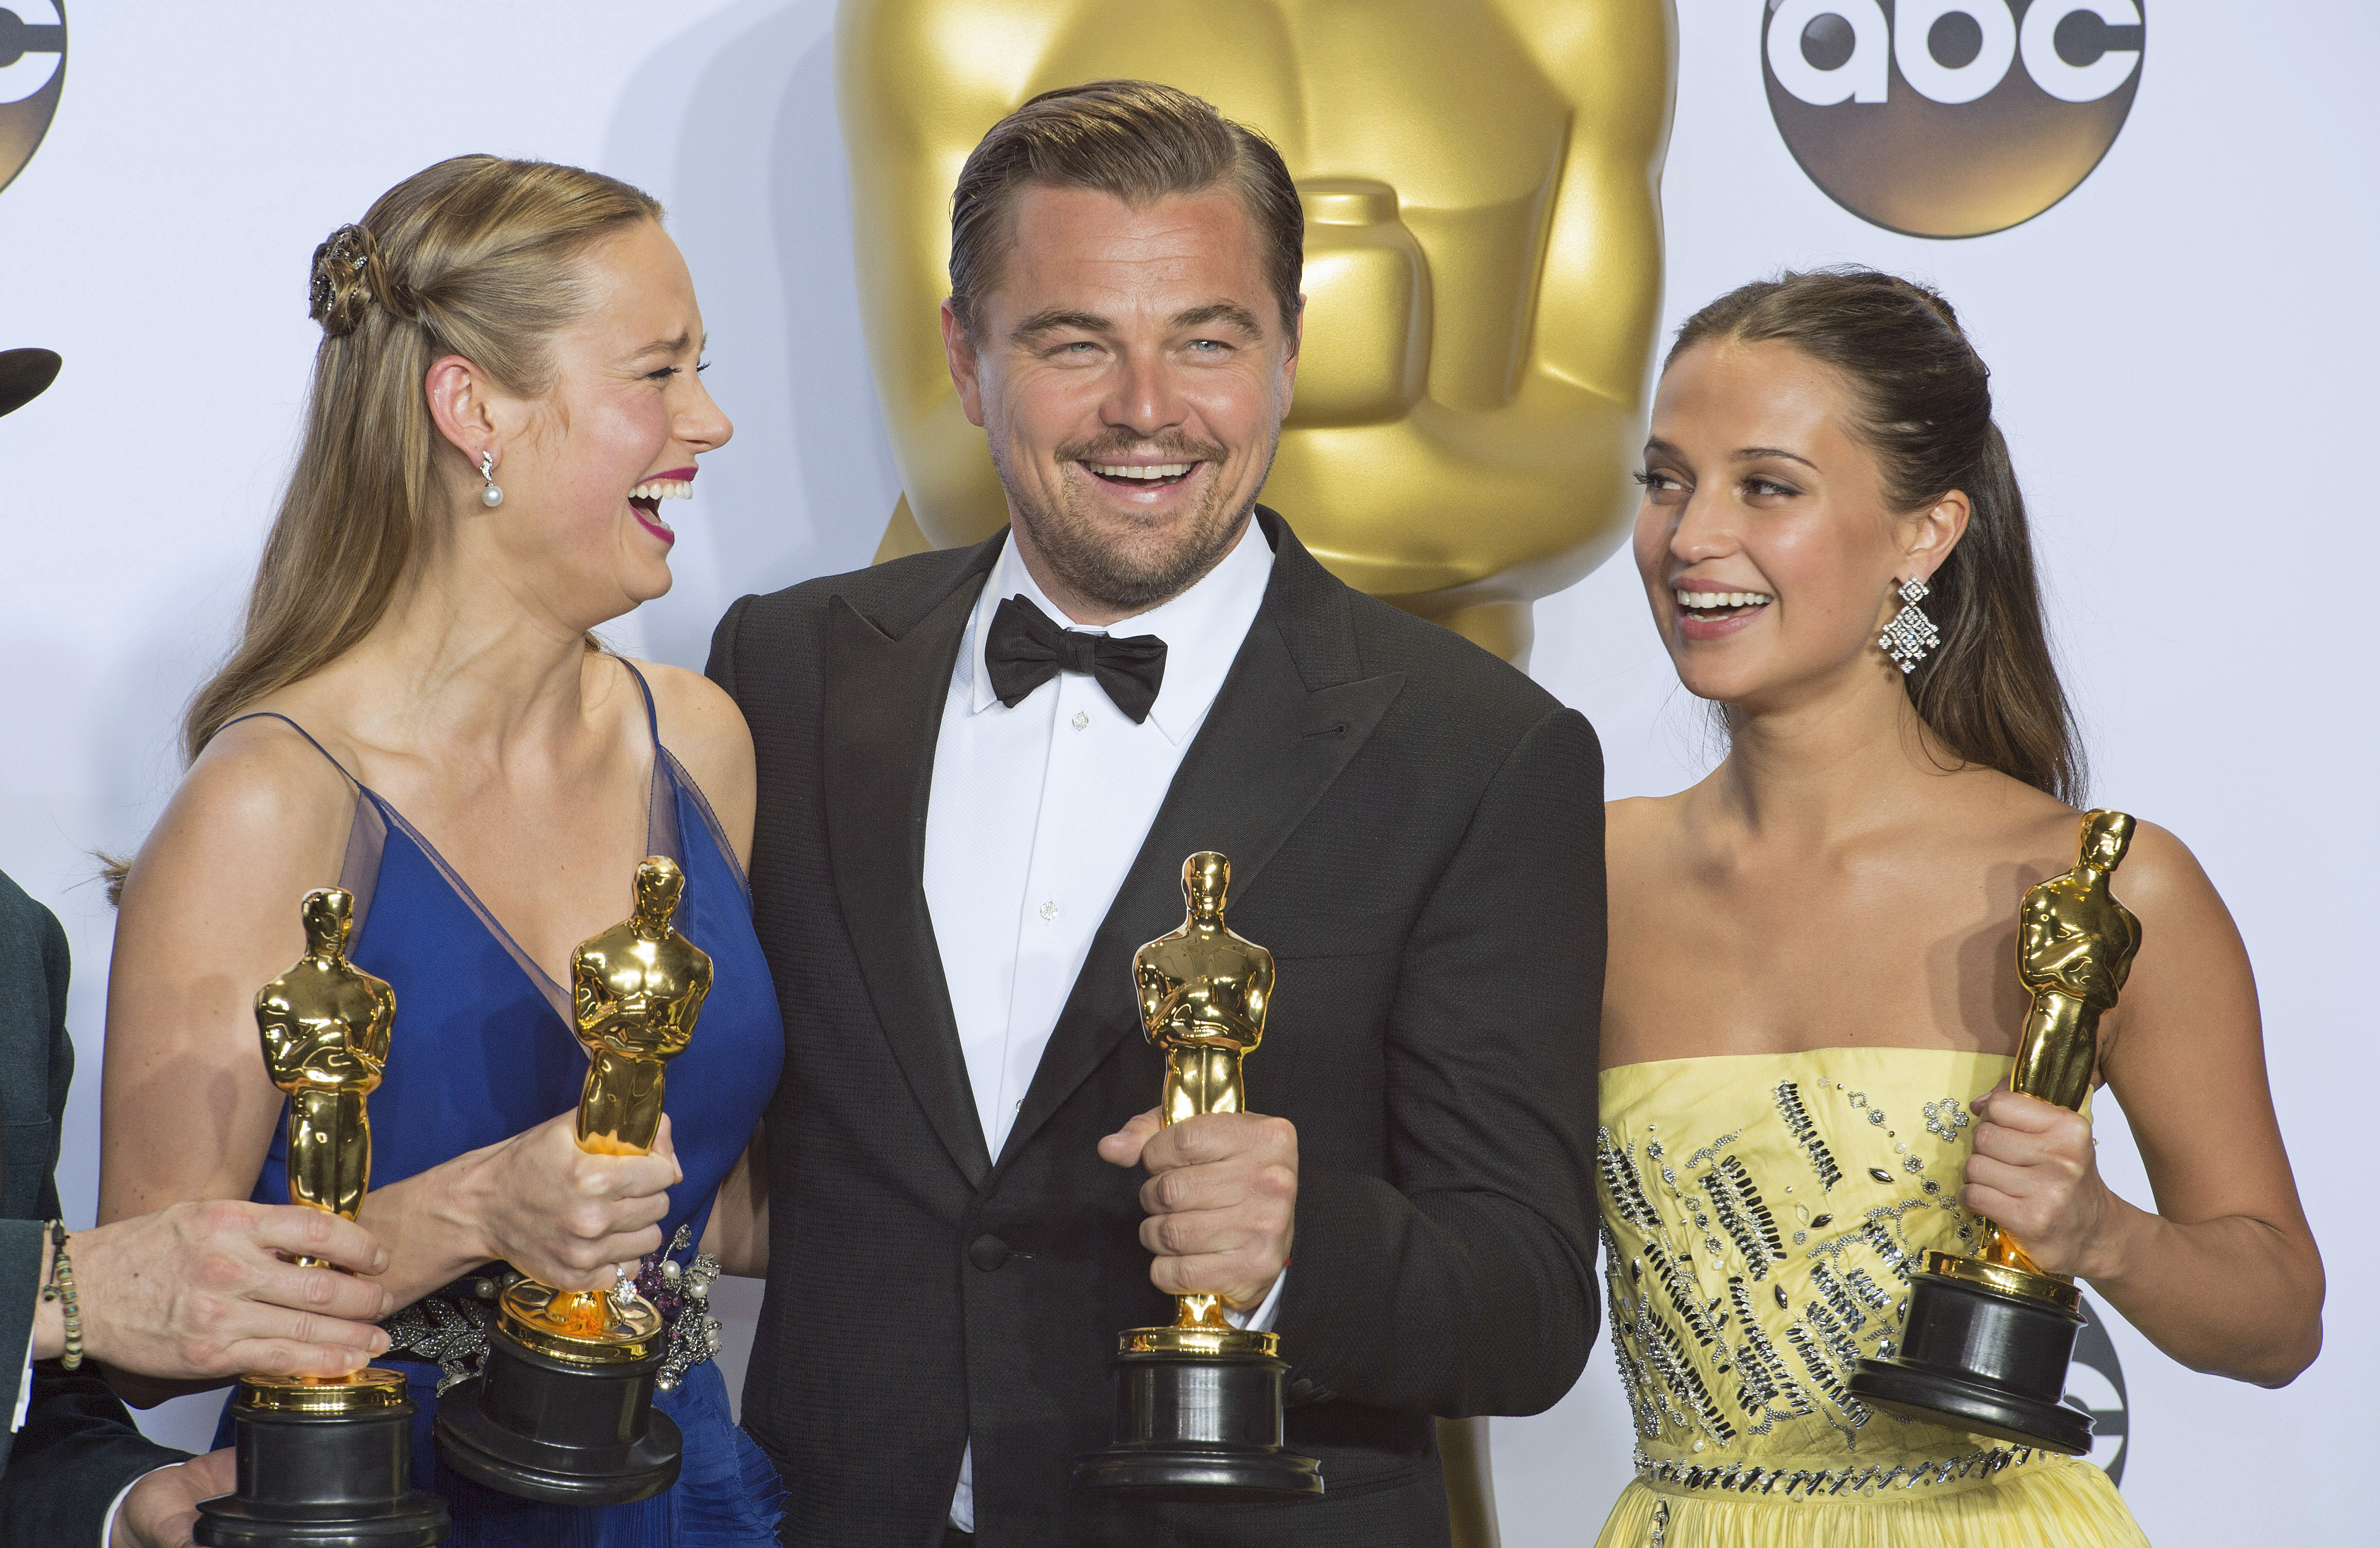 Red carpet - The Oscars